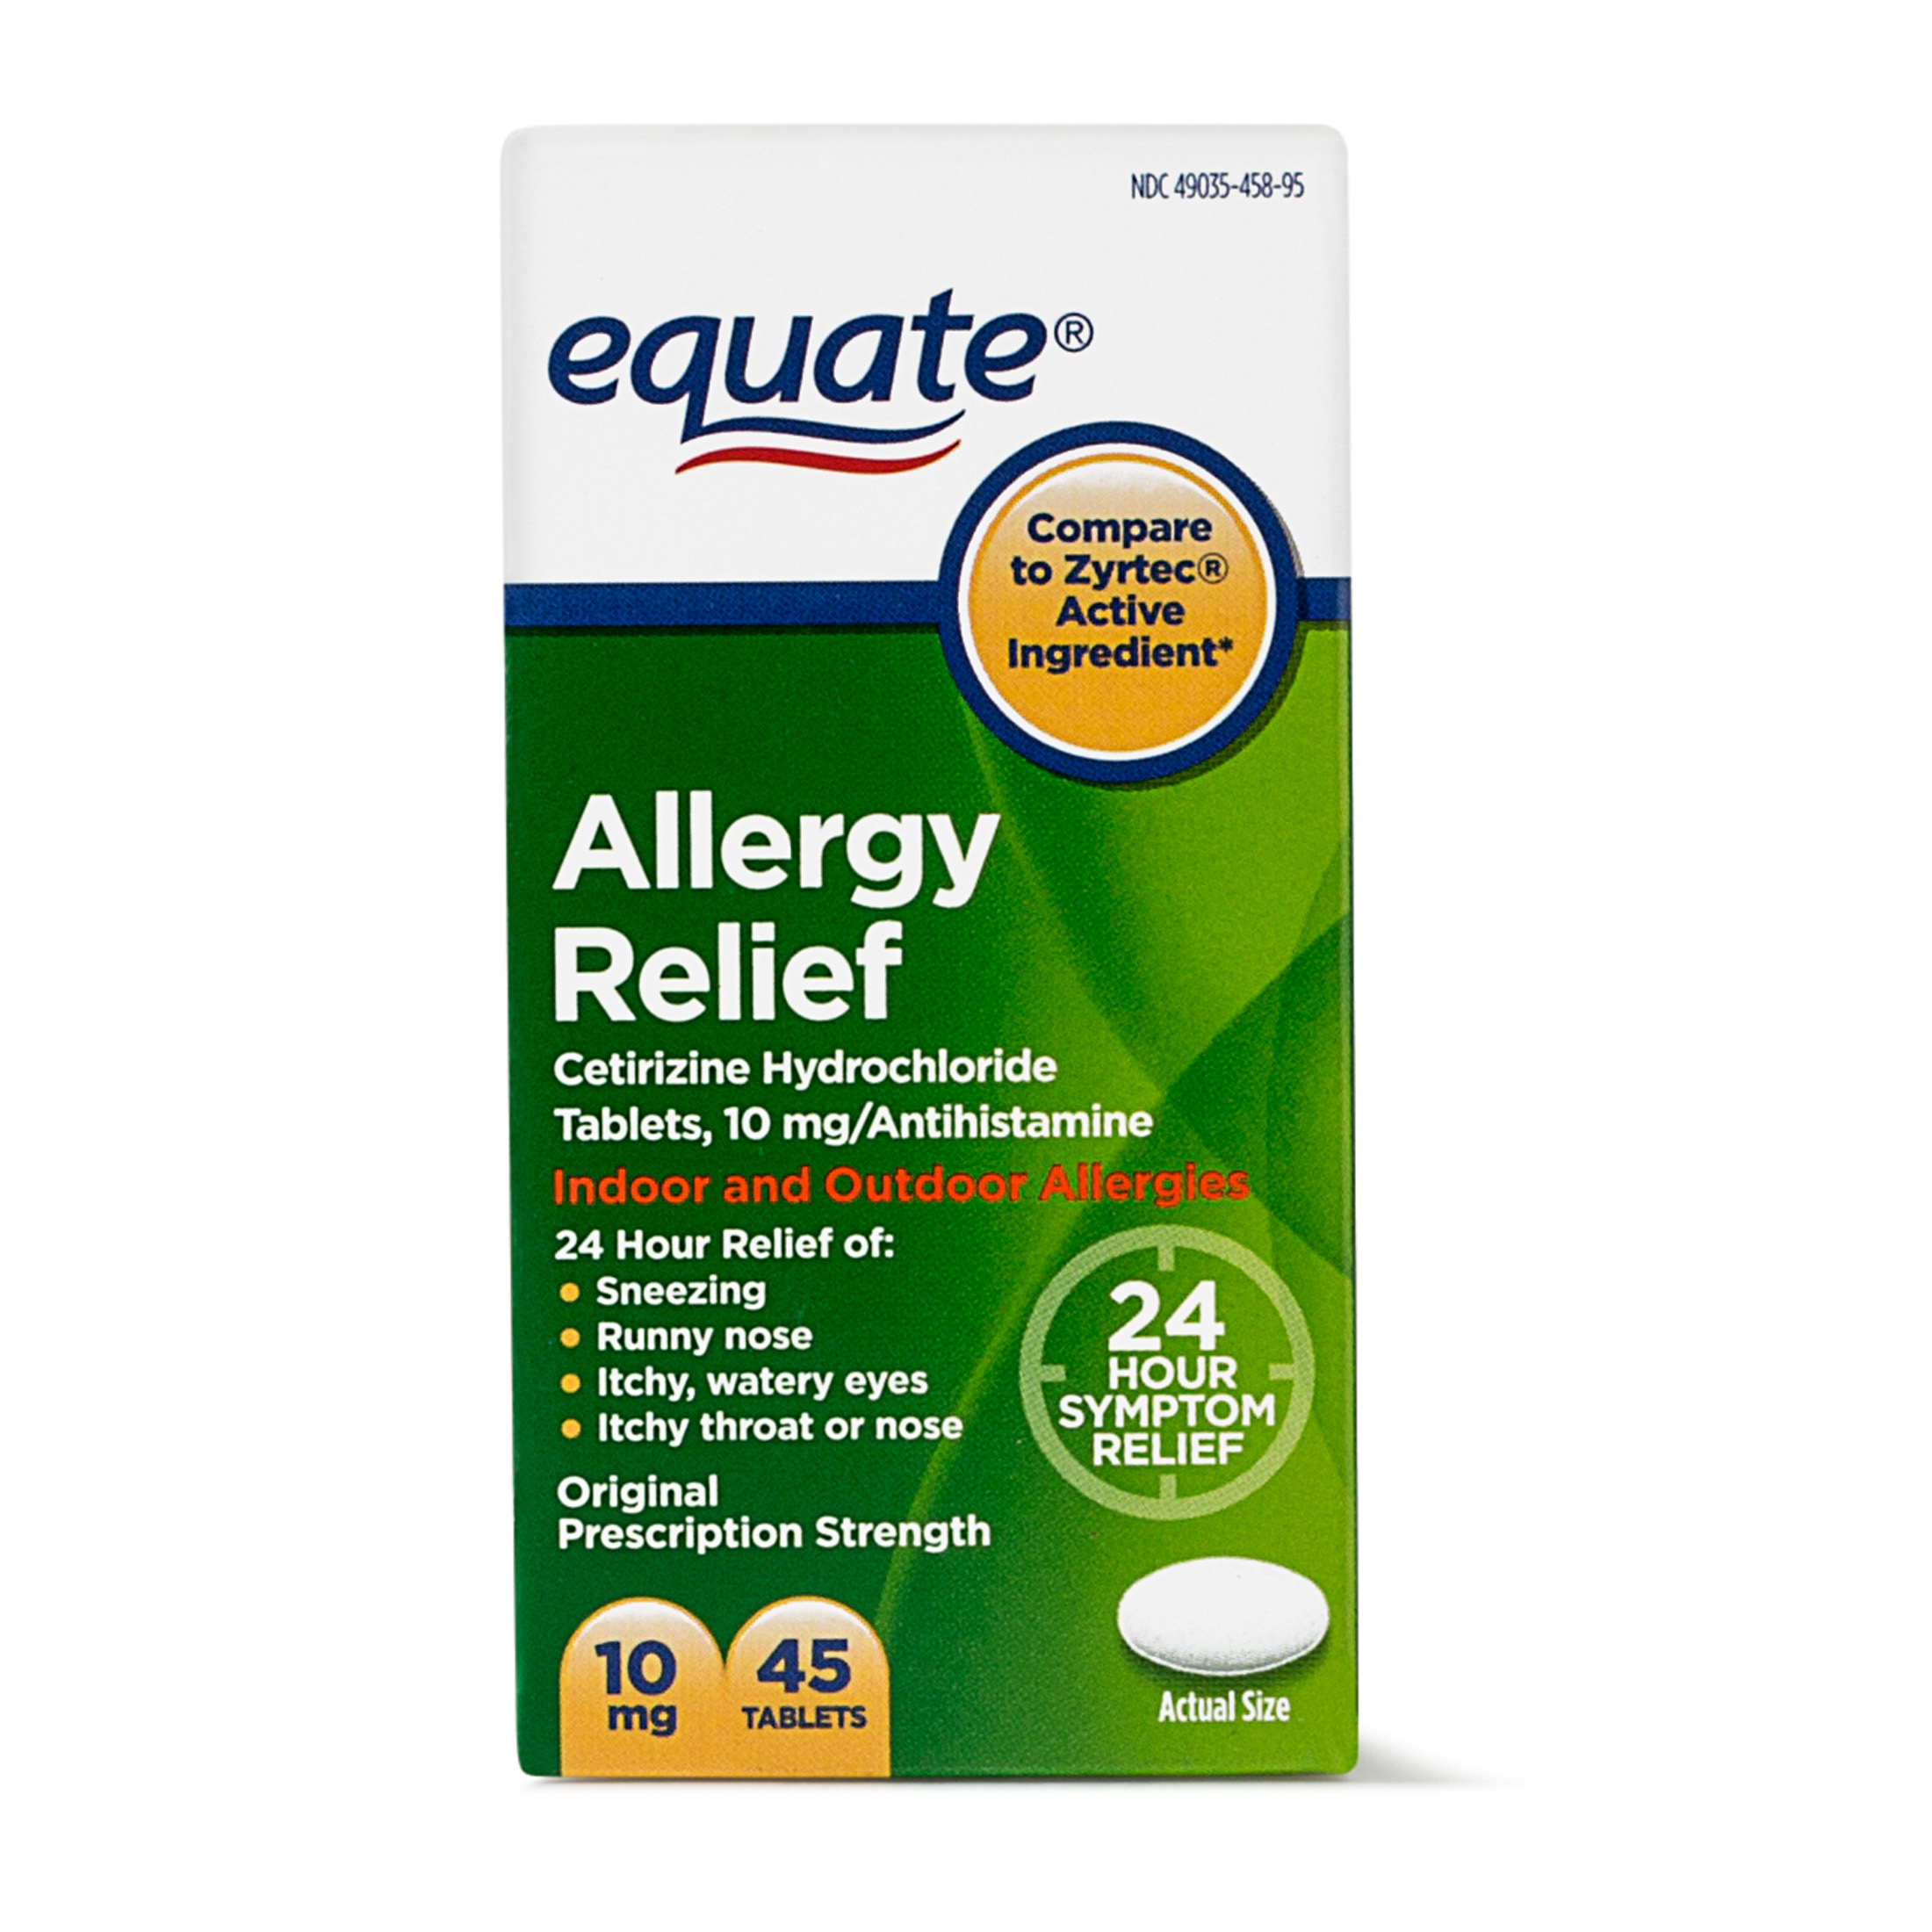 Equate Allergy Relief Cetirizine Antihistamine Tablets, 10 mg, 45 Ct - Walmart.com | Tuggl